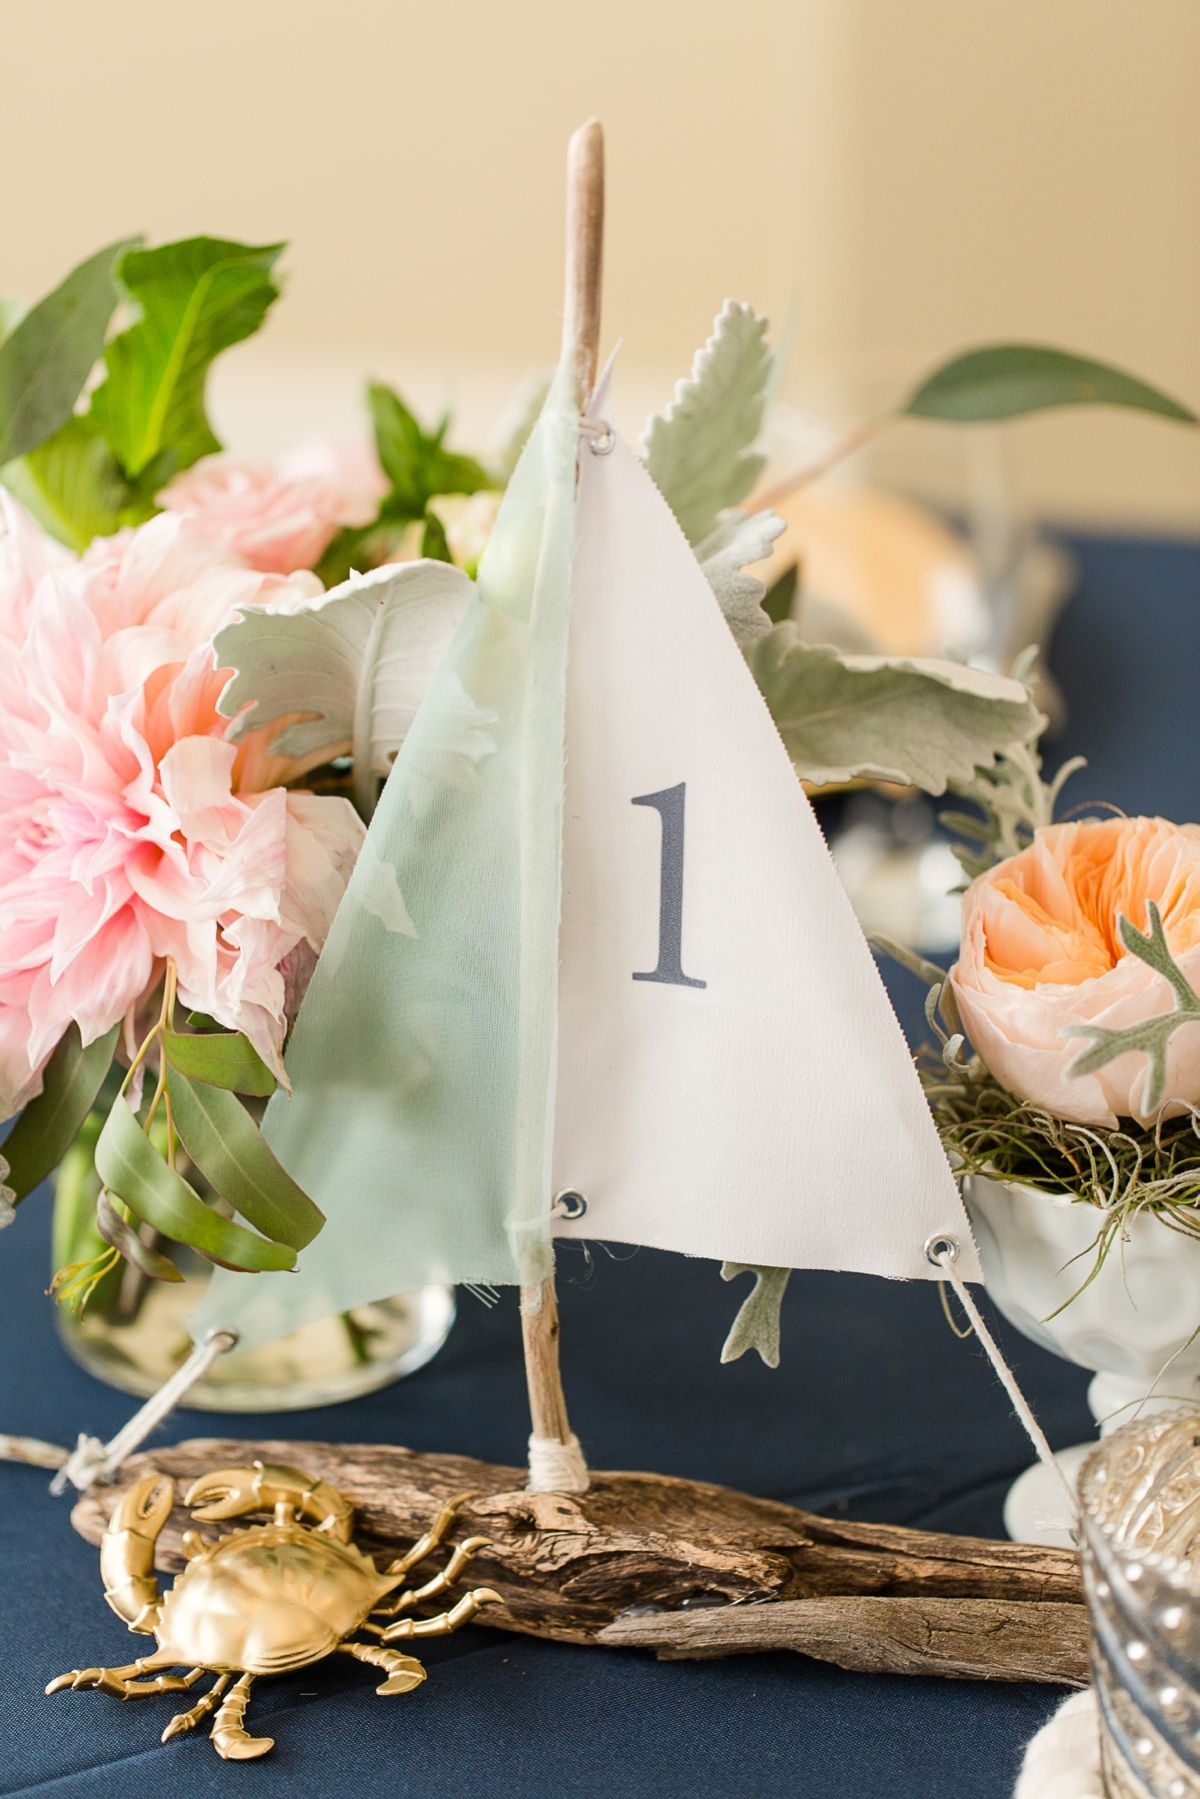 Wedding Decorations Re Sailboat Driftwood Table Decorations Re Pinned By Http Www